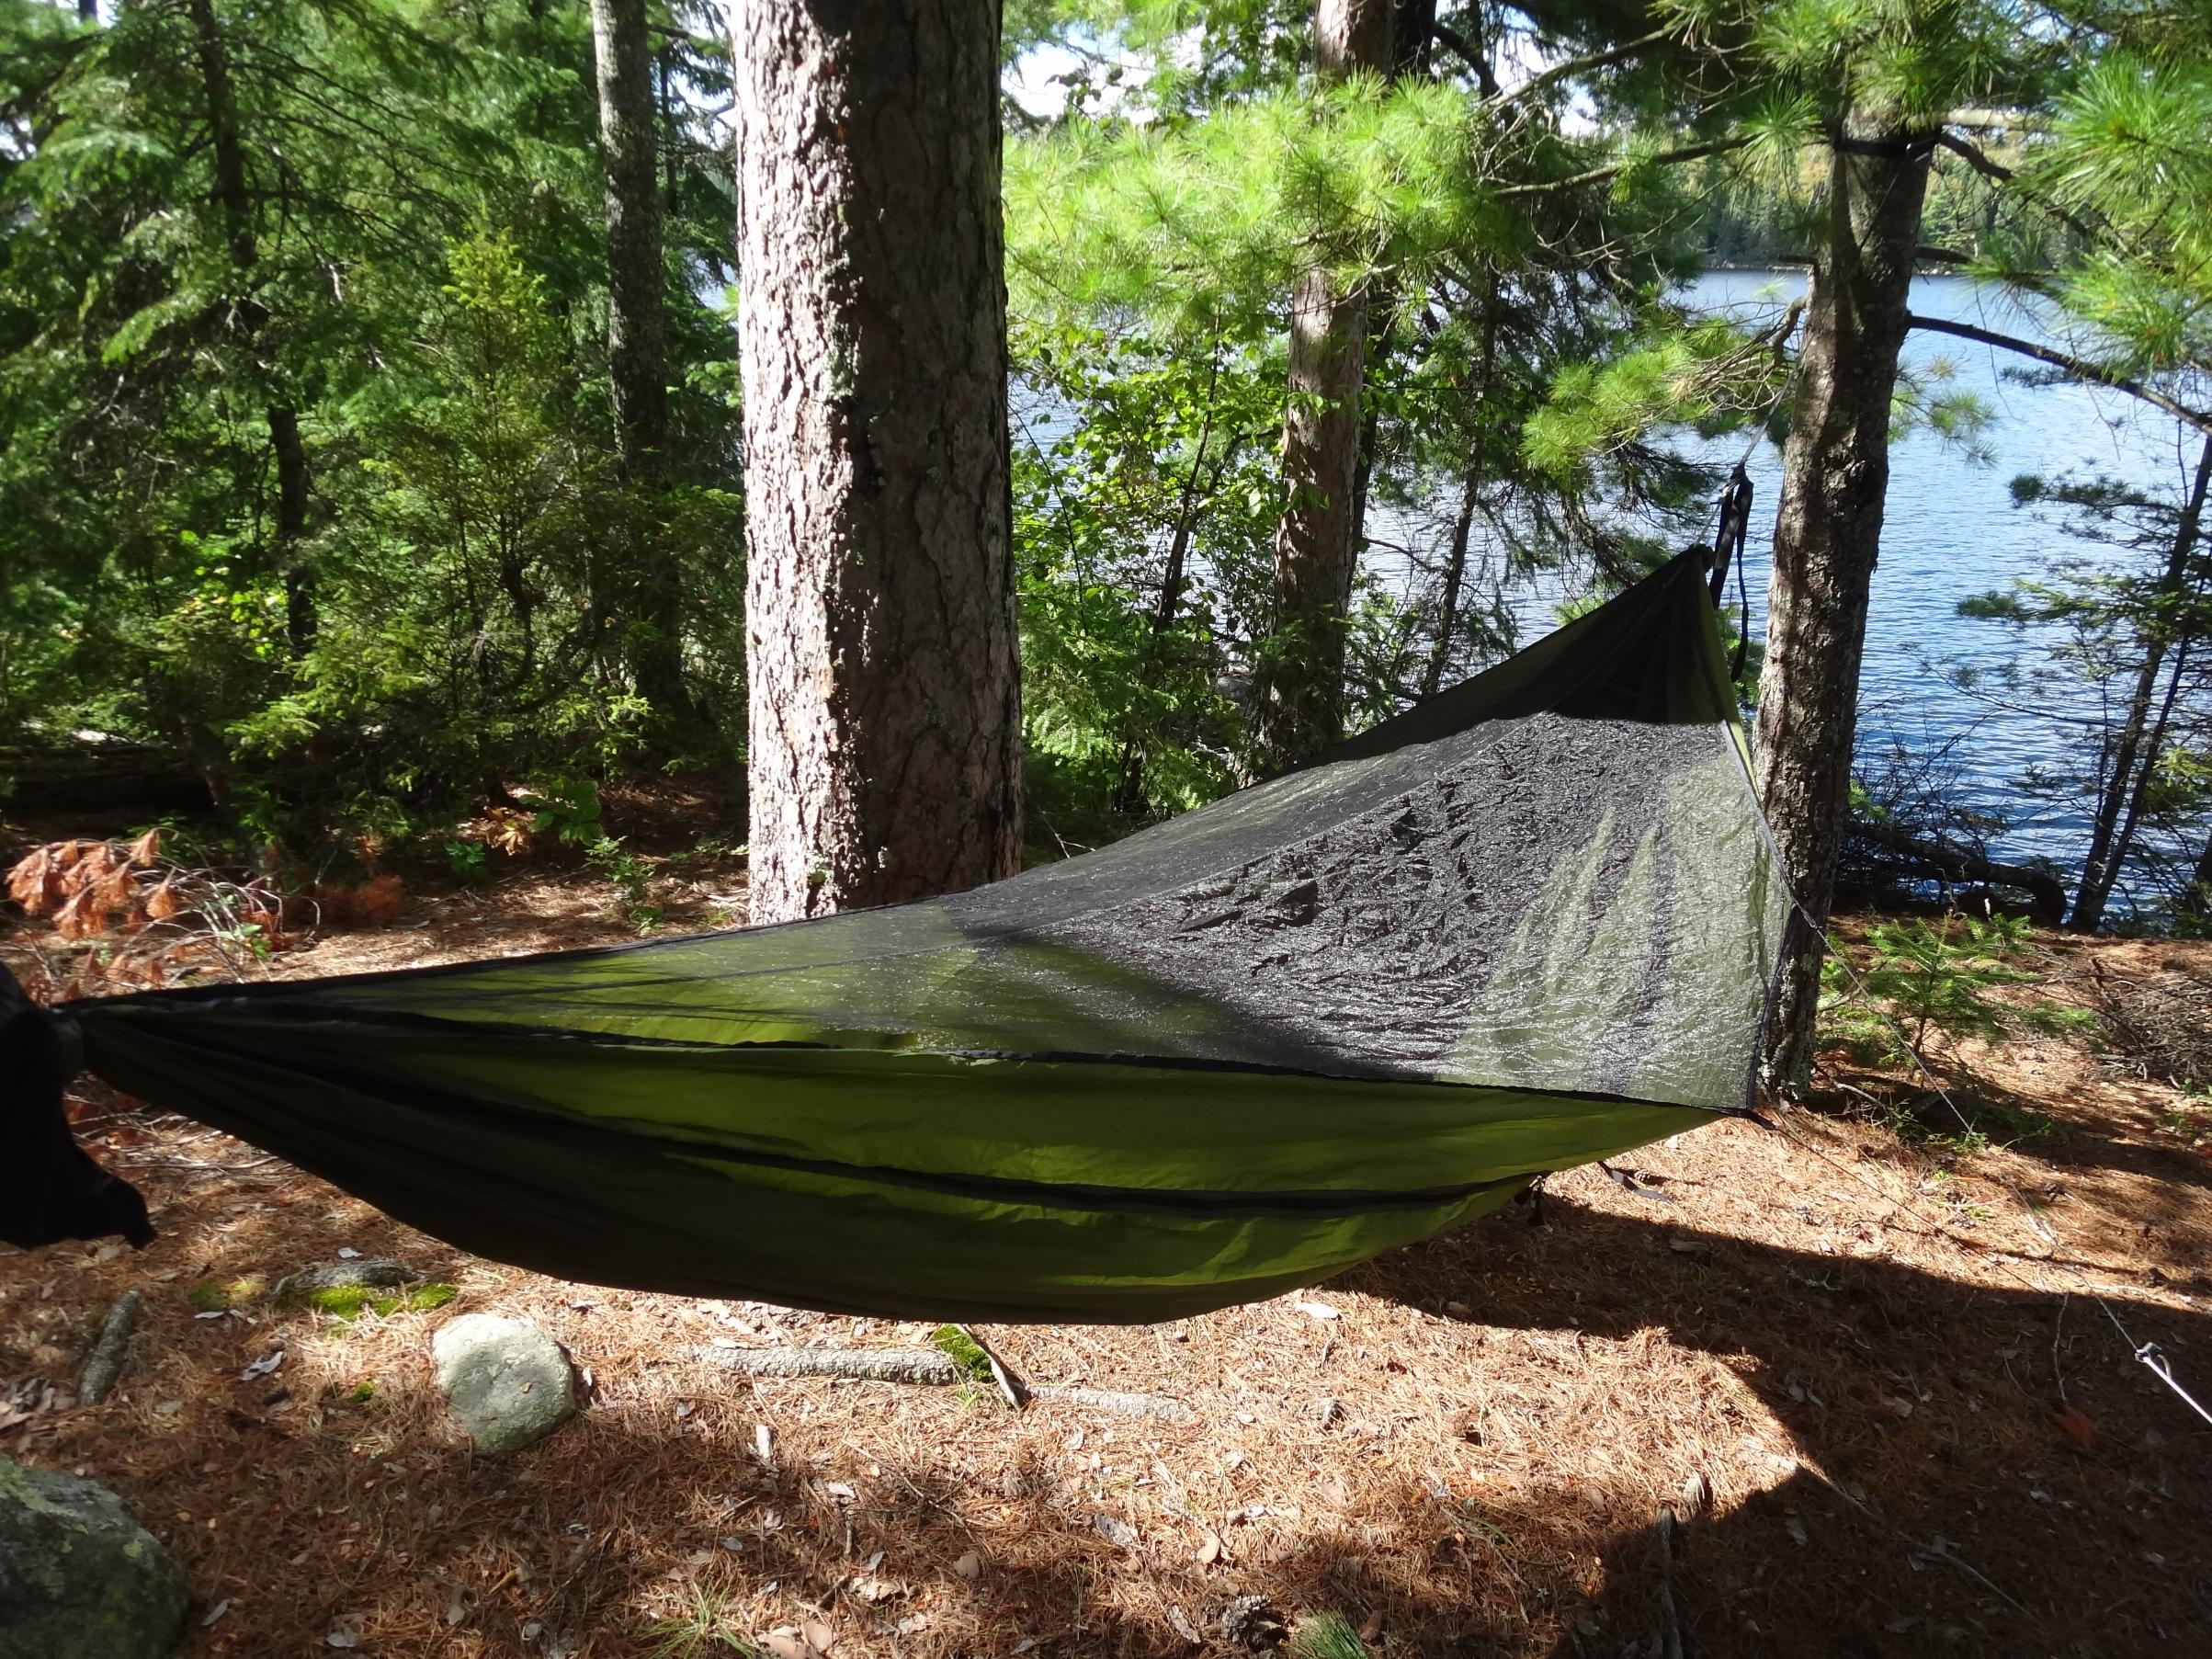 mosquito tttm living moon net blue happiness parachute to light slow the relax s land camping ticket with a orange hammock outdoor hangers double